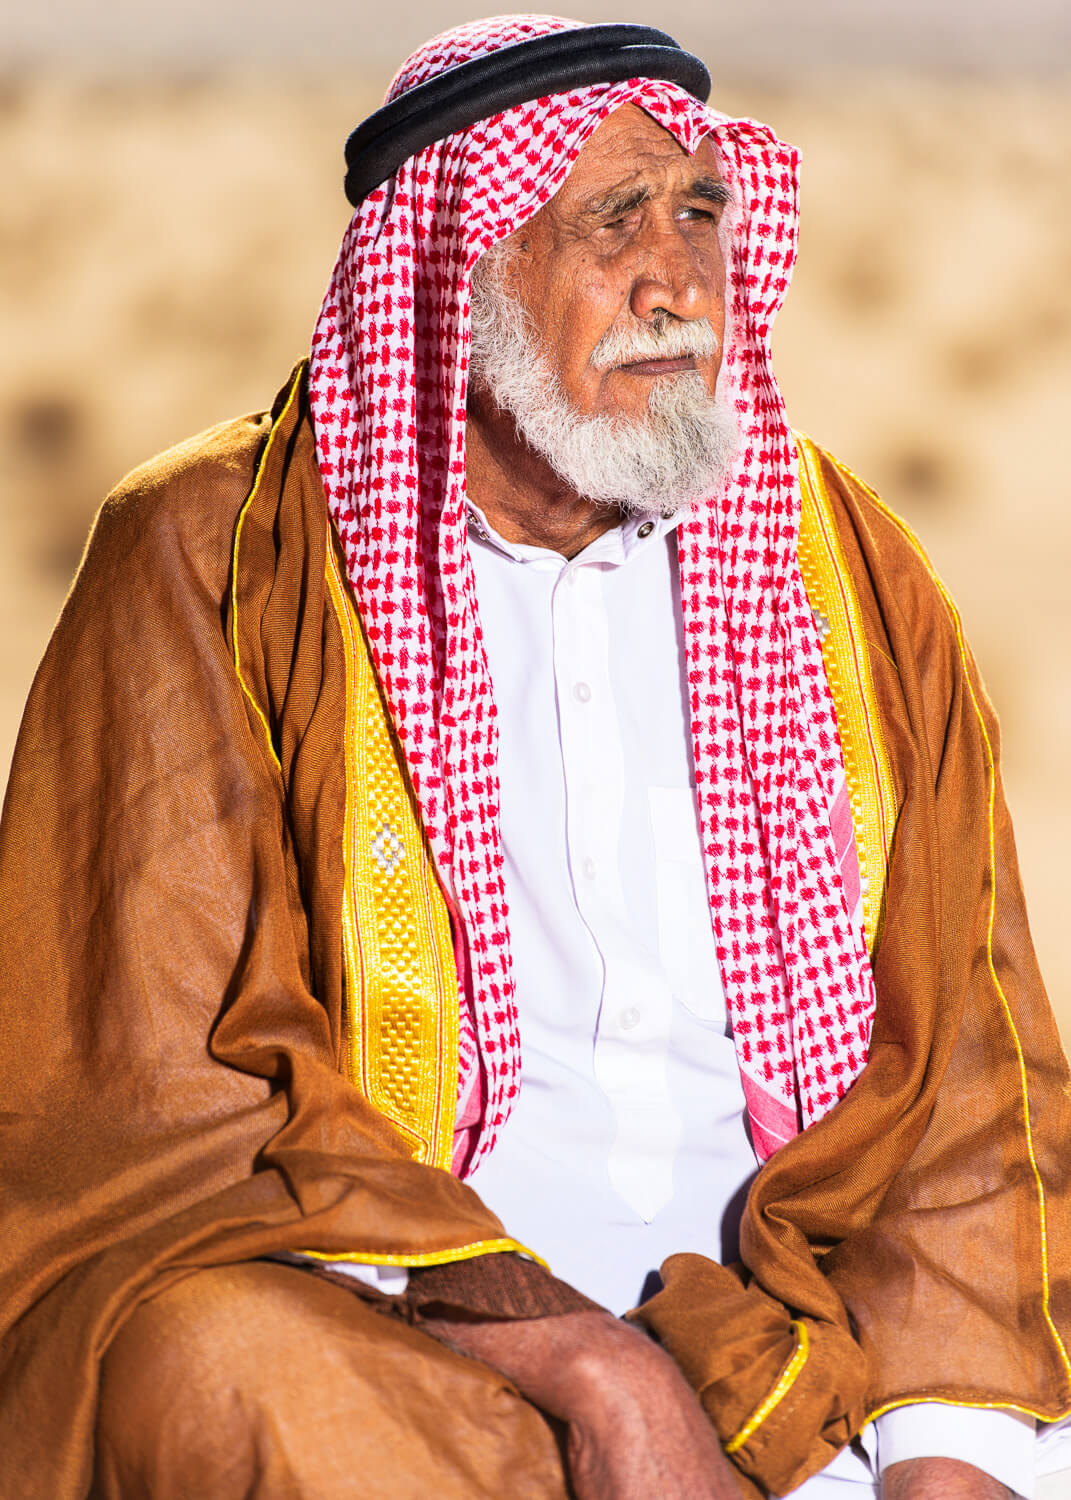 portrait photography dubai